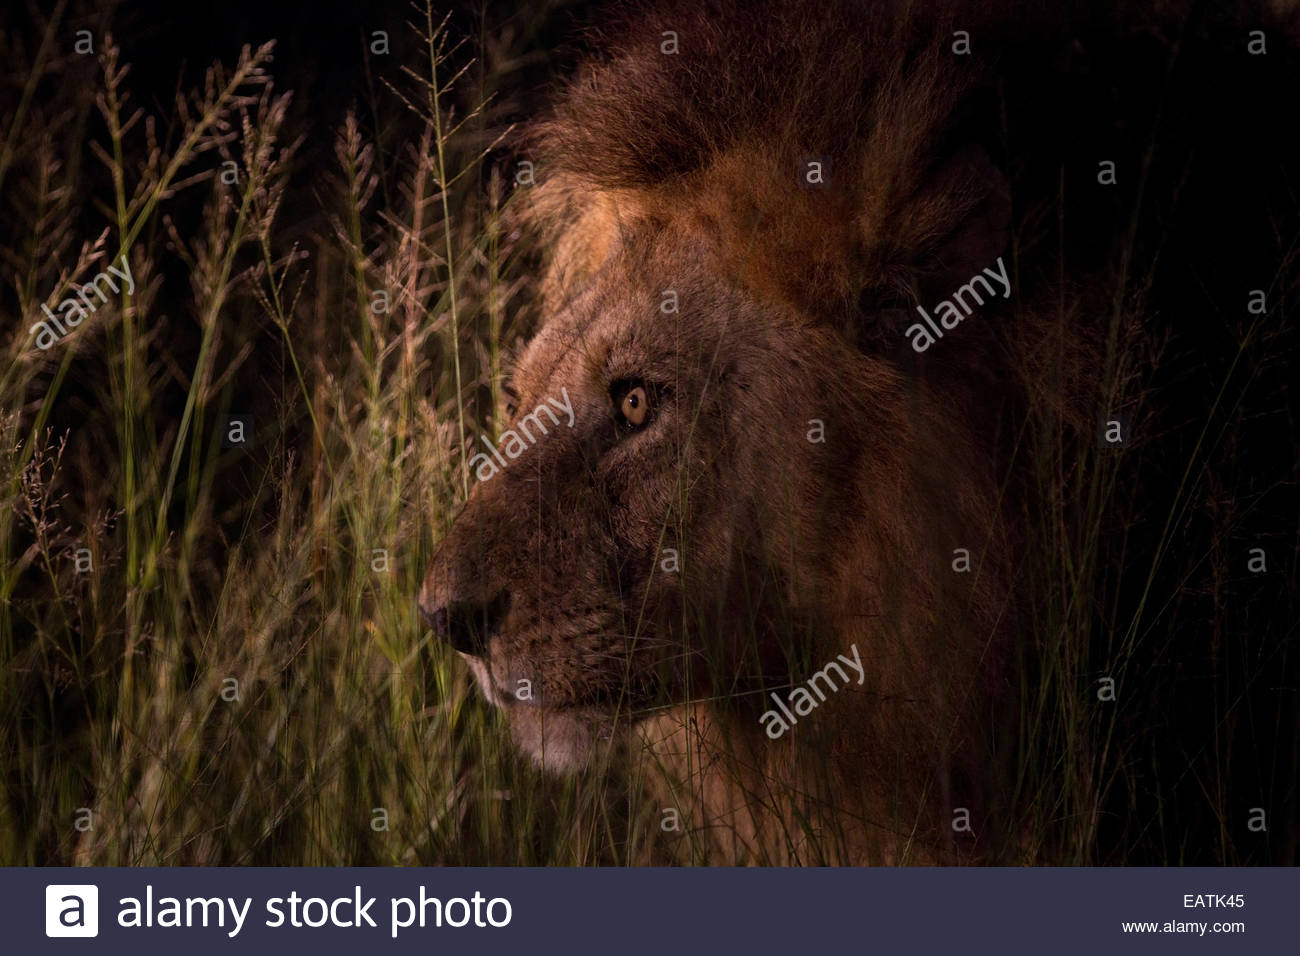 Portrait of a male African lion, Panthera leo krugeri, at night. - Stock Image